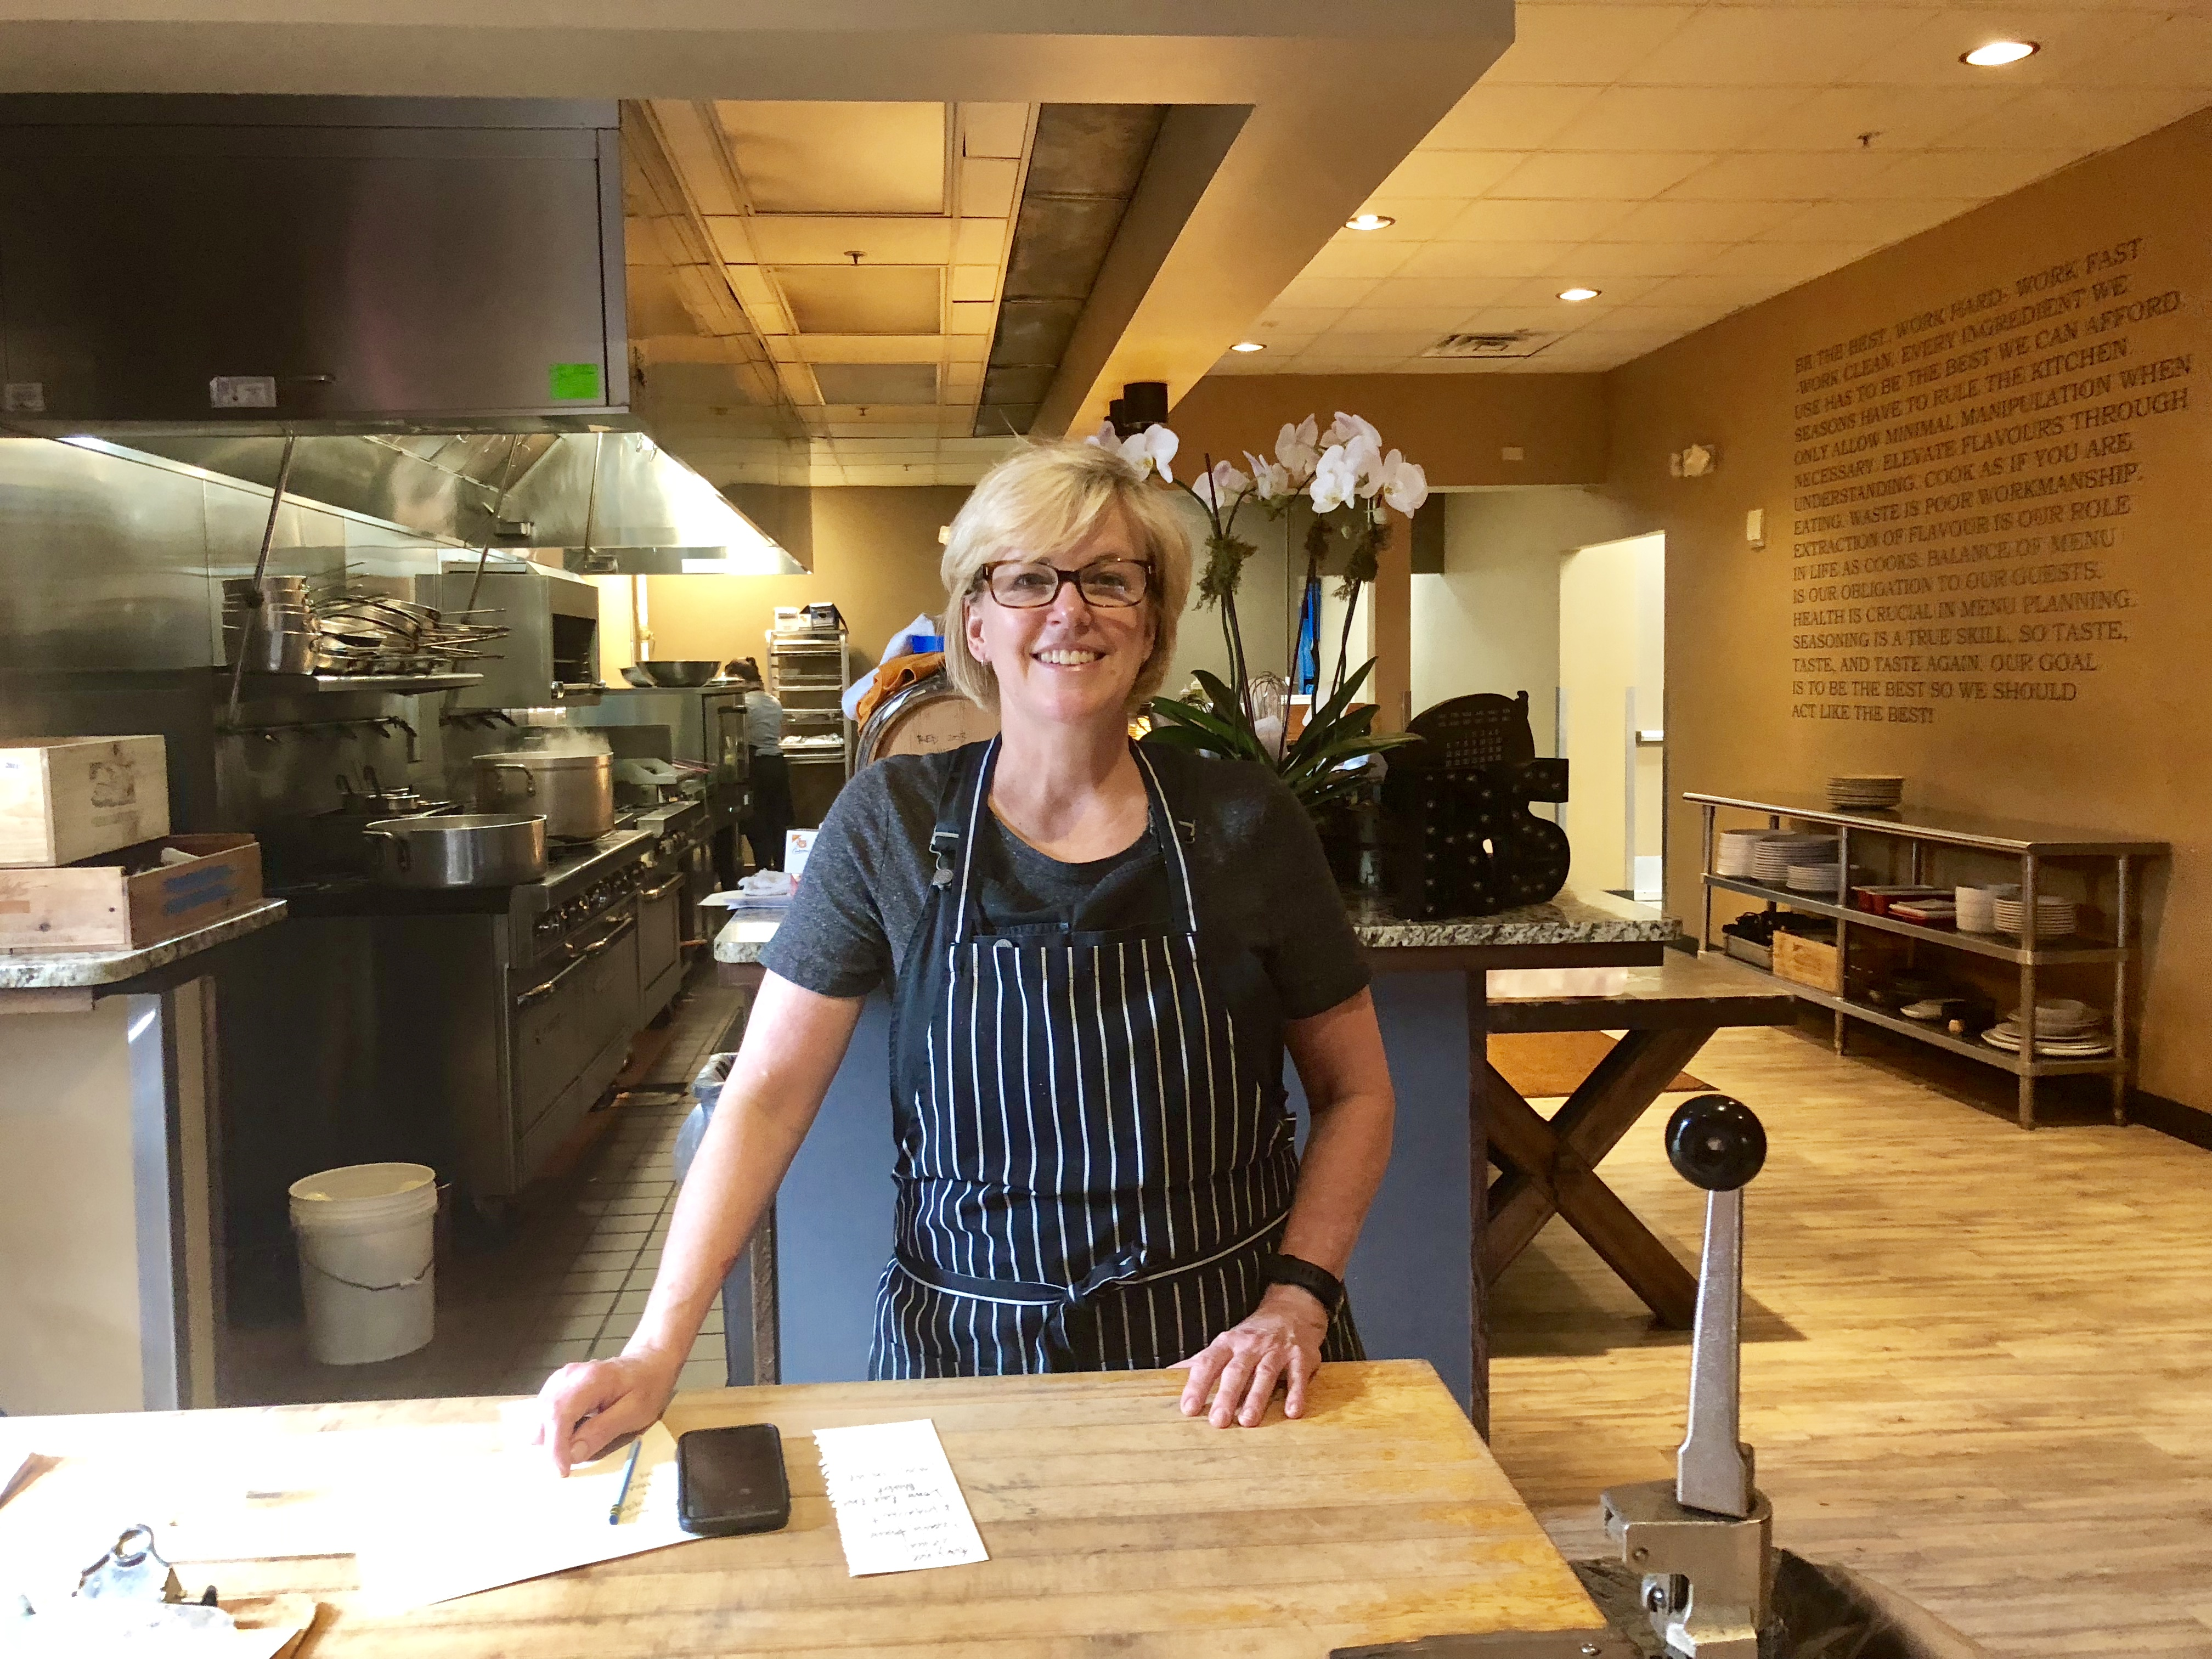 Chef-owner Kathleen Blake stands in her kitchen at the Rusty Spoon in downtown Orlando, where she´s been a pioneer in the local farm-to-table movement.